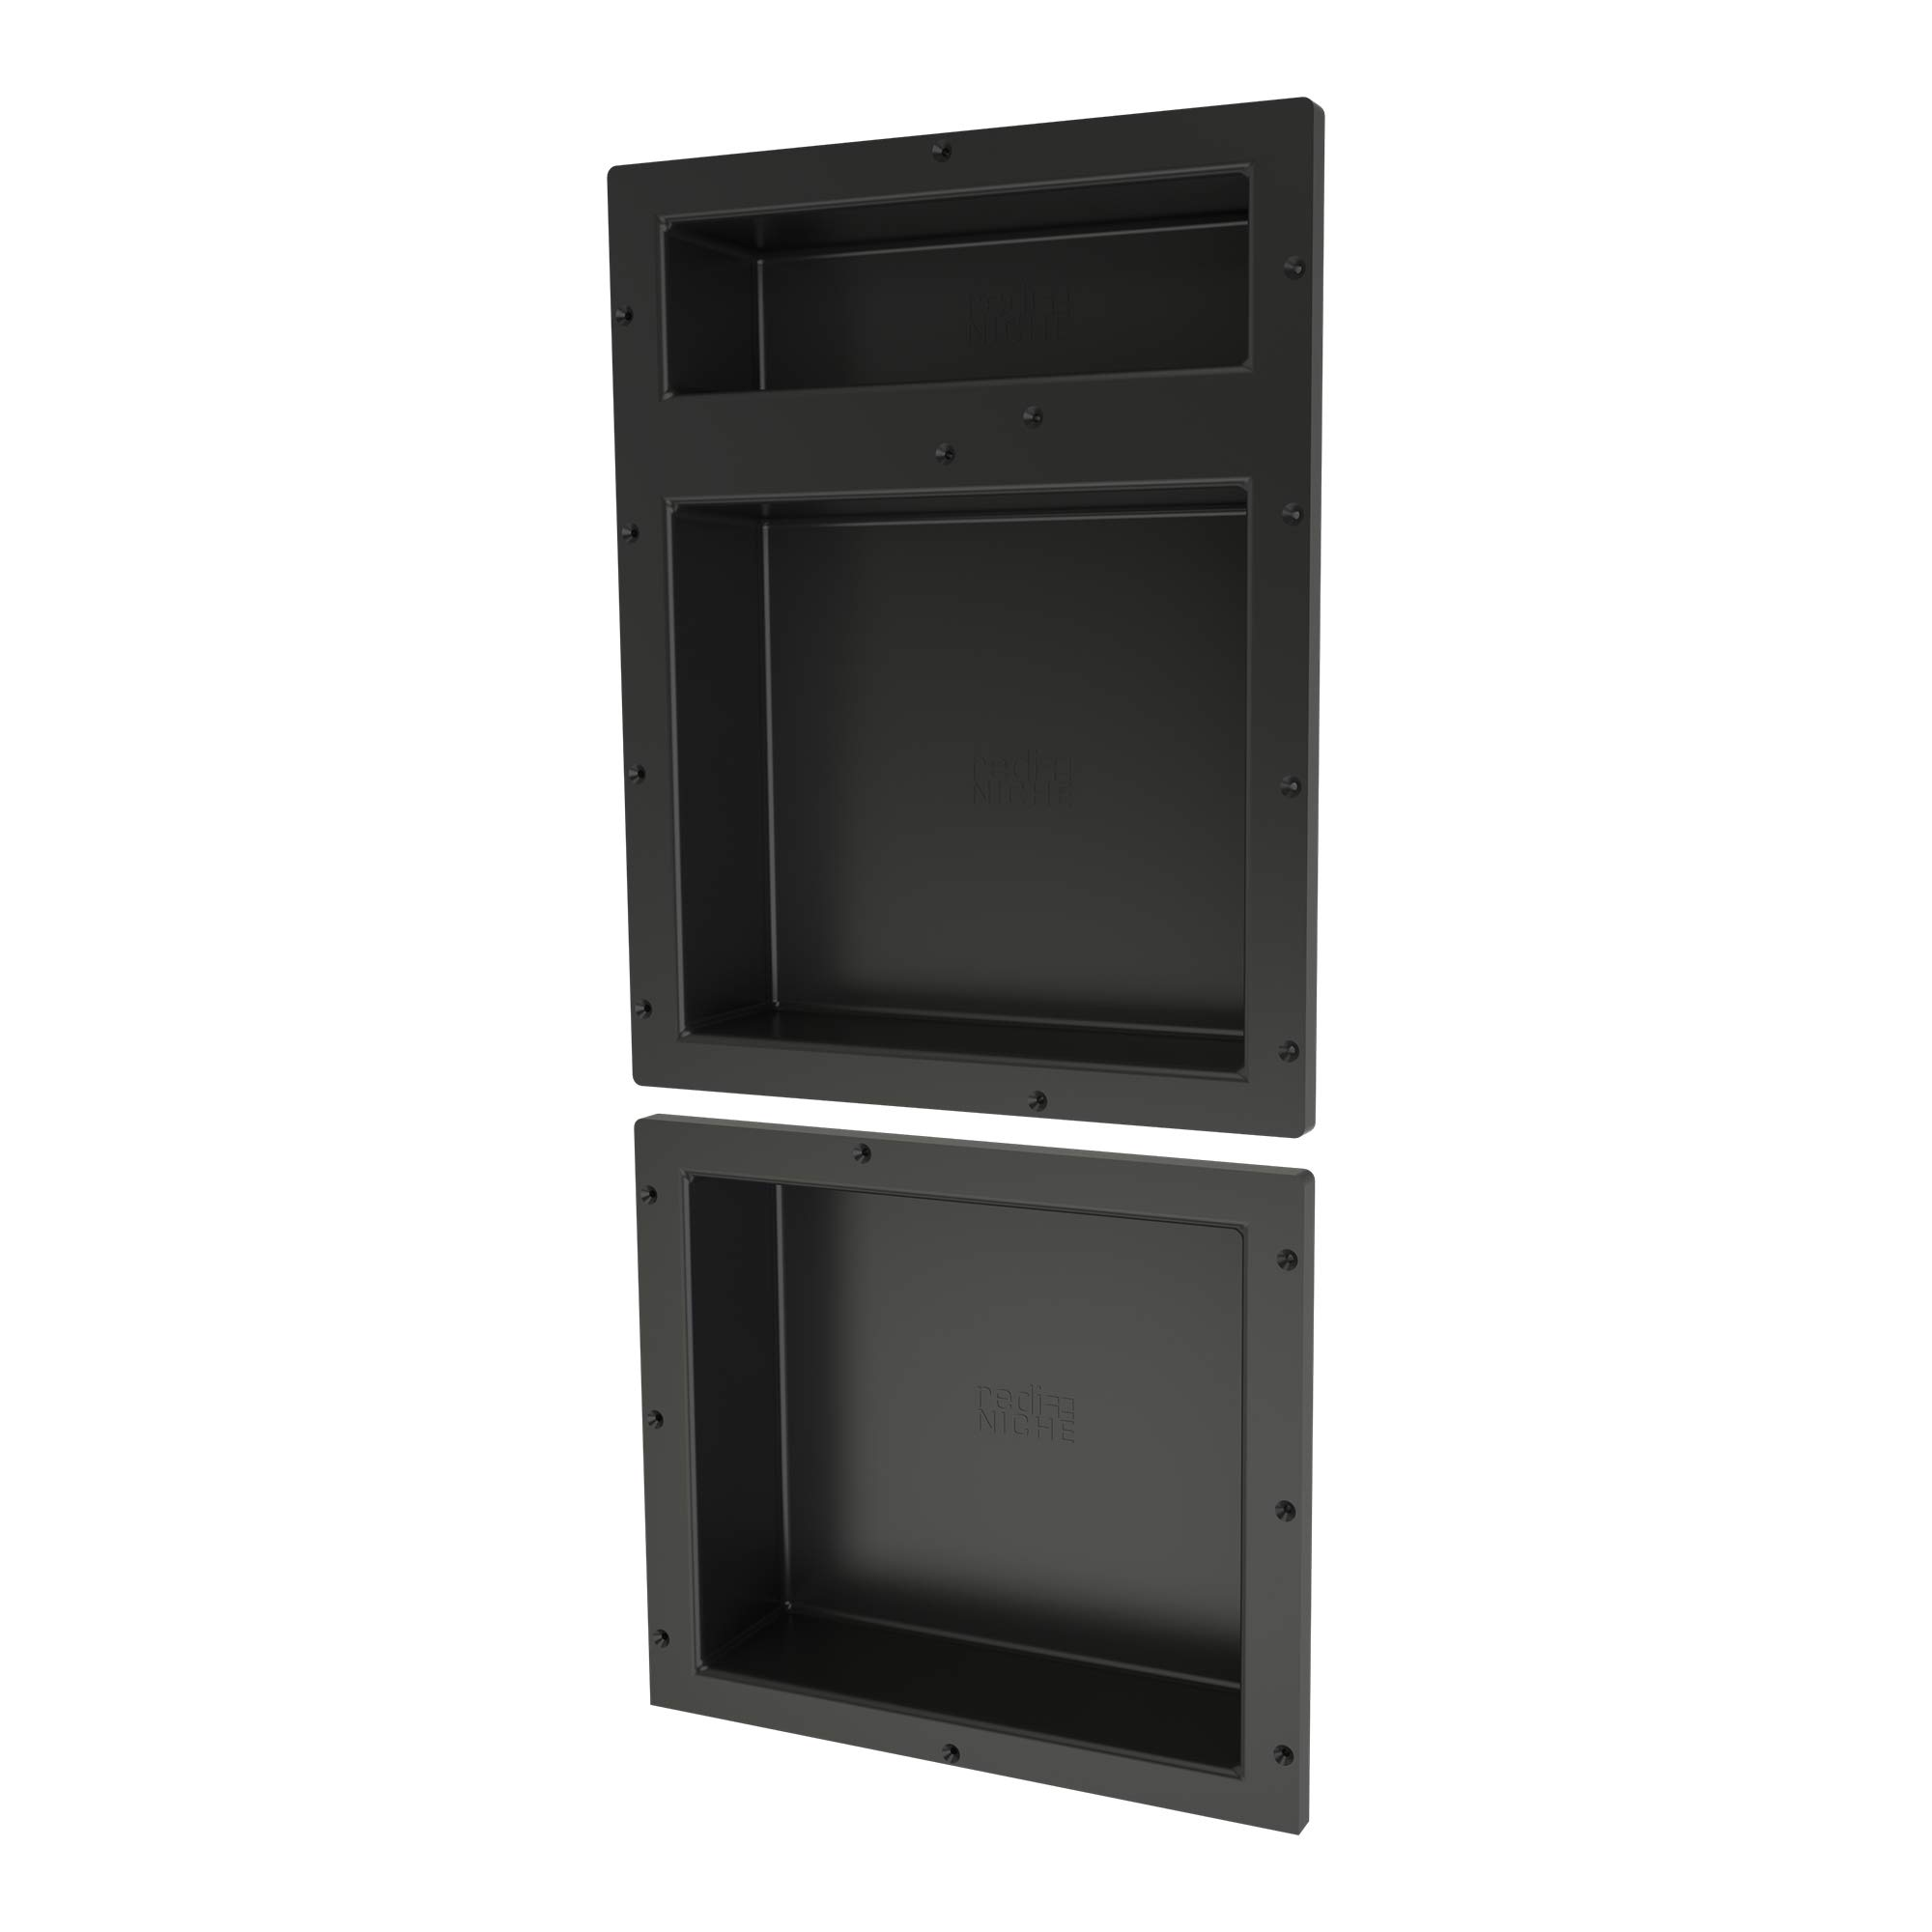 Tile Redi USA RNT1620DU-14 Niche Shower Shelf, 16'' W x 34'' H, Black by Tile Redi USA